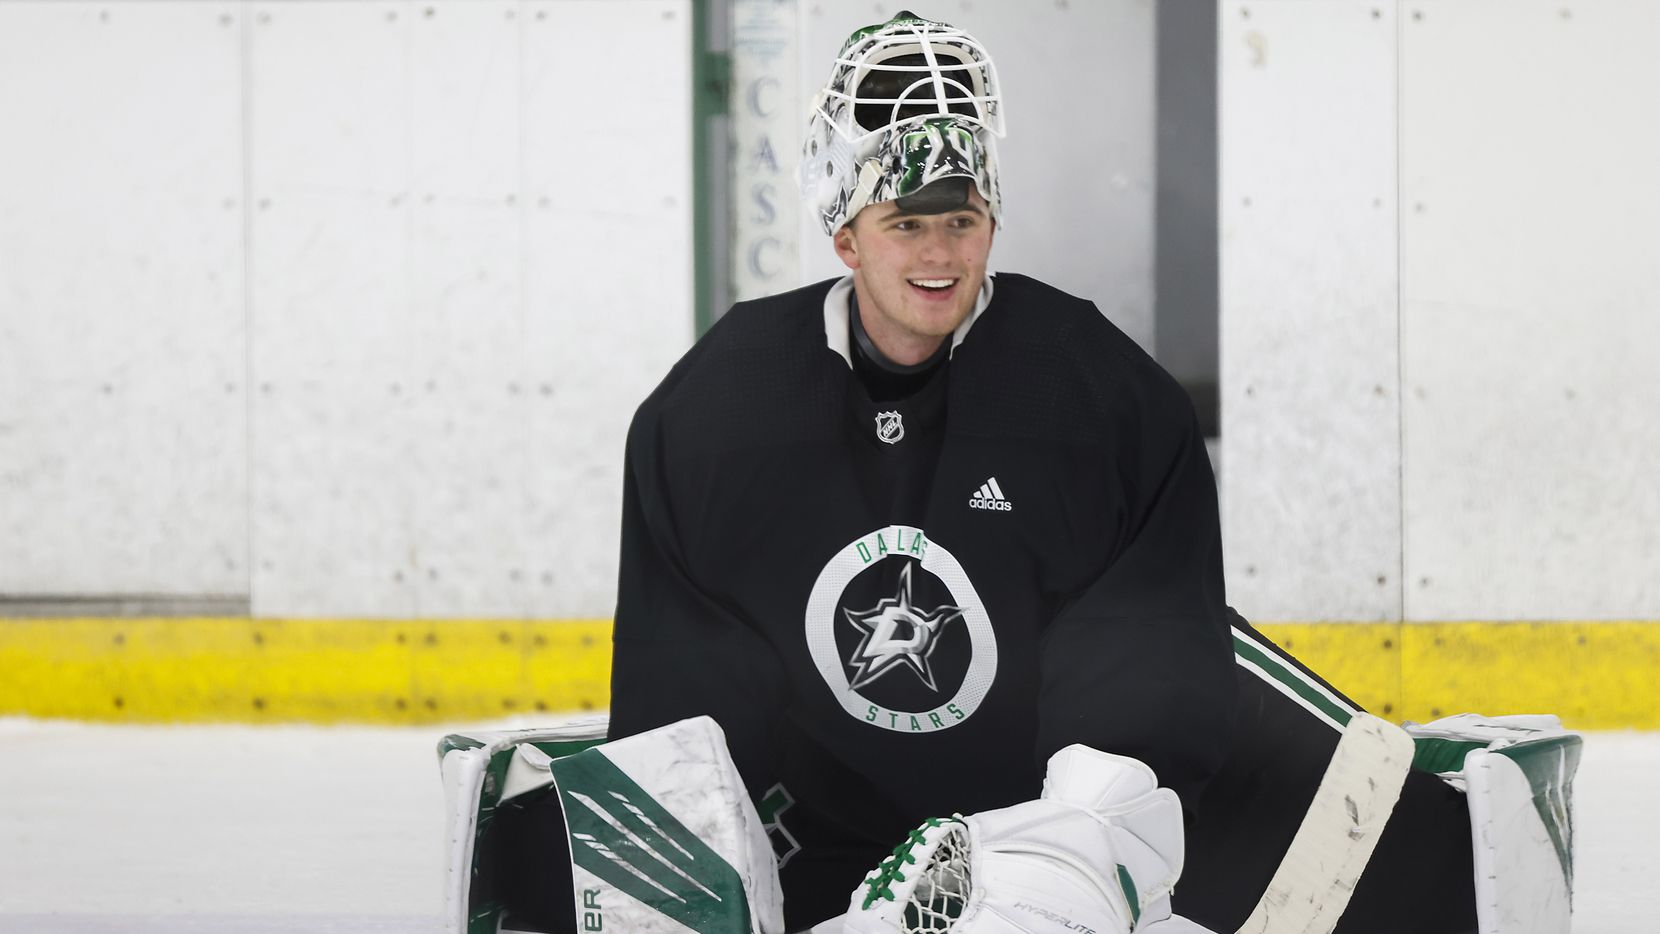 Dallas Stars goaltender Jake Oettinger stretches during a training camp practice at the Comerica Center on Wednesday, Jan. 6, 2021, in Frisco.